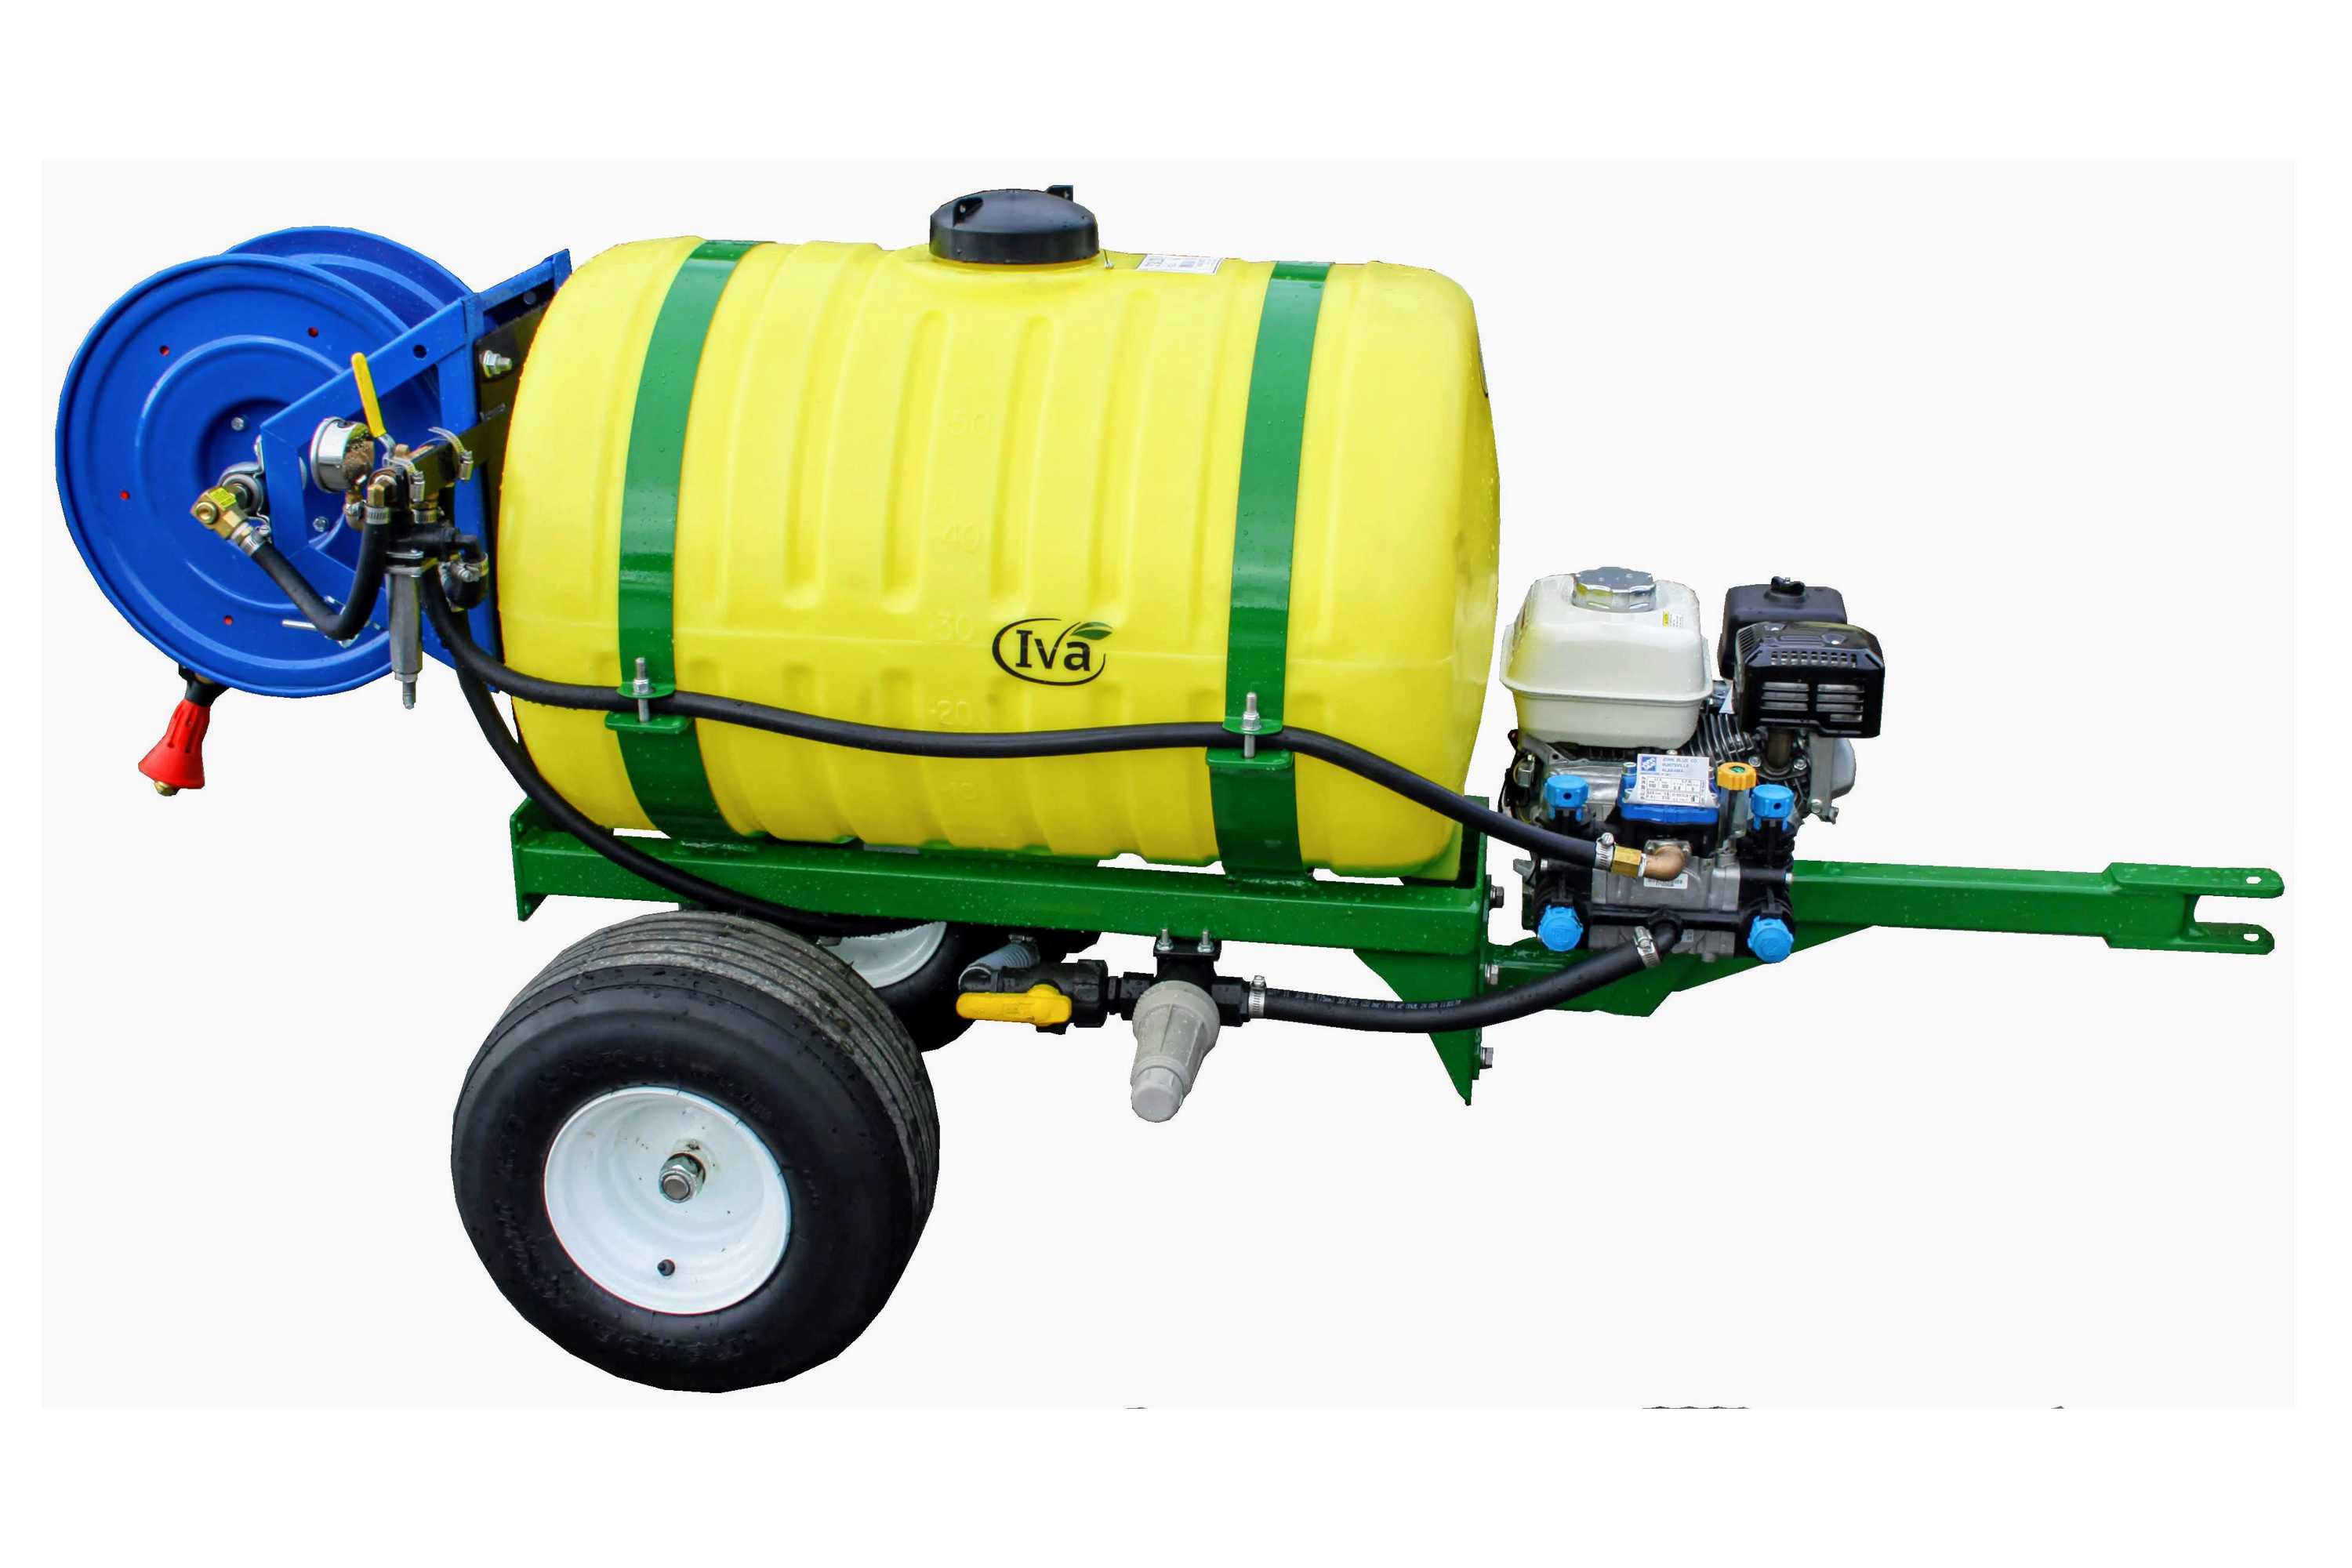 Orchard sprayer with 55 gallon tank and hose reel